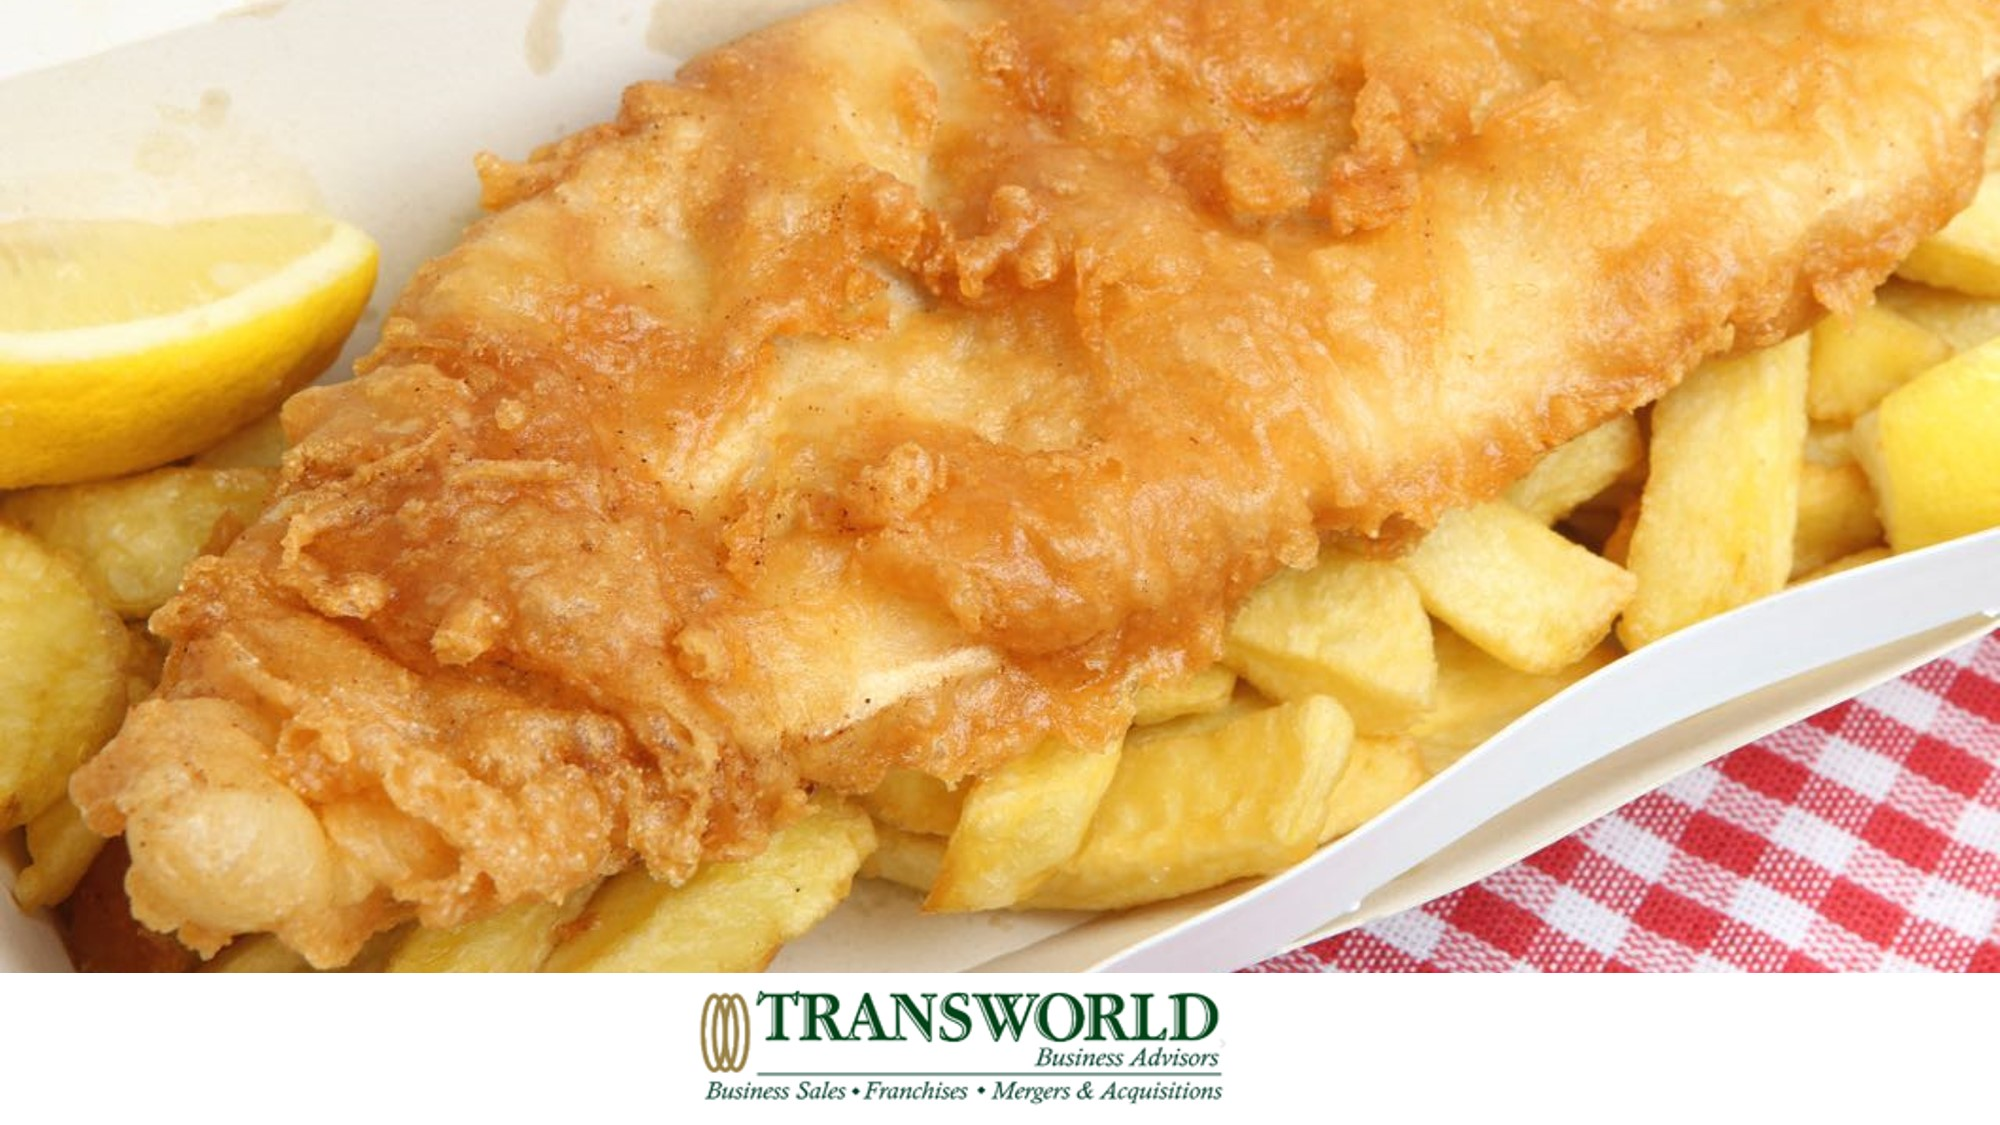 Fish and Chip Shop. Great location takeaway or casual dining